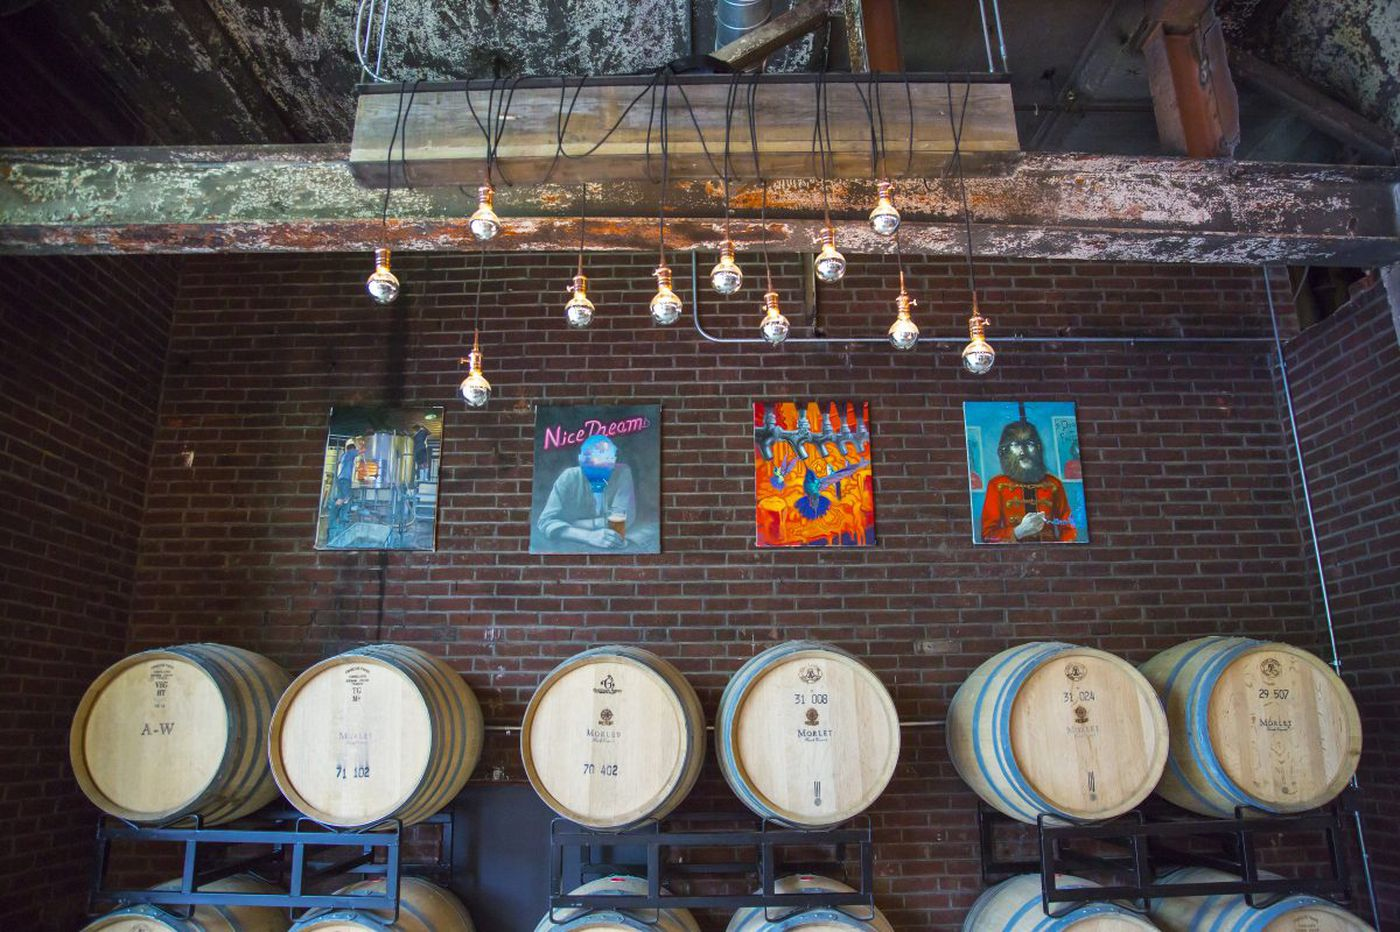 Creepy art and bizarre names: How far will Philly brewers go to